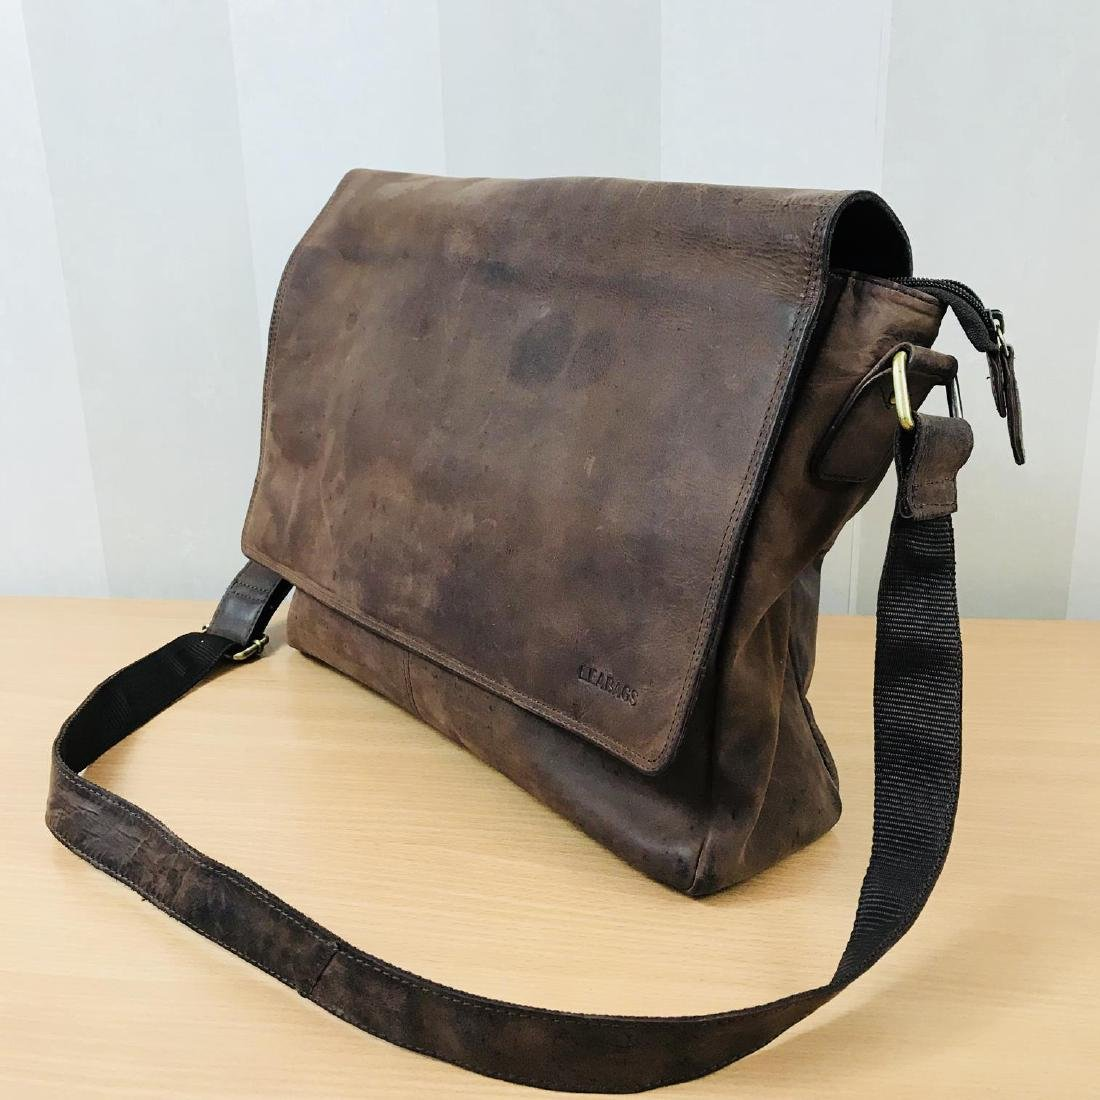 Vintage LEABAGS Leather Shoulder Bag - 2